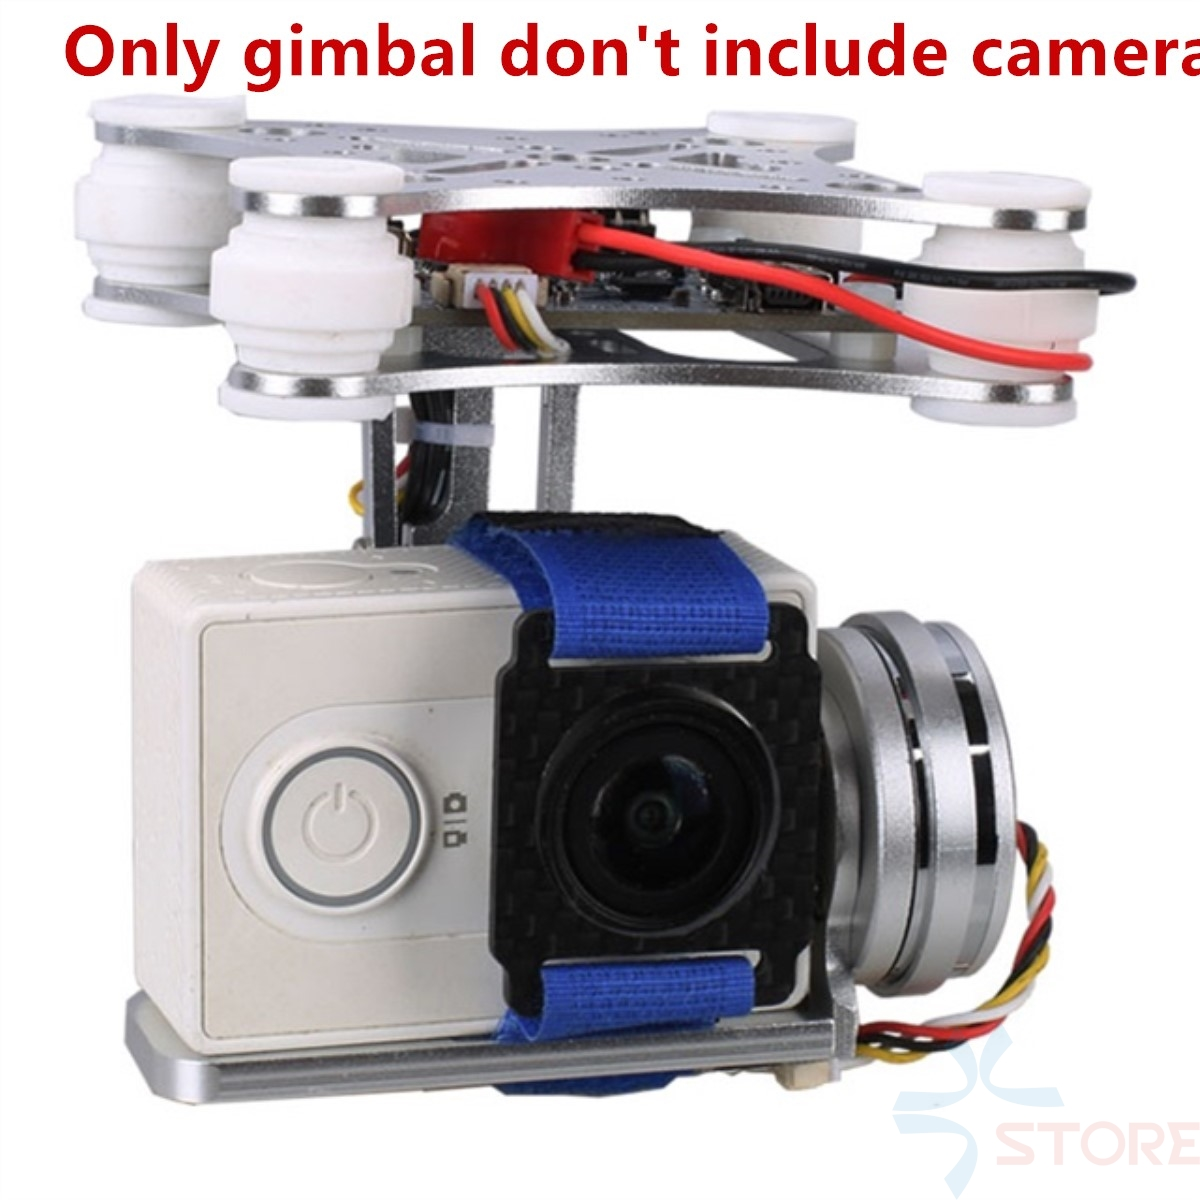 2 Aixs 2D Brushless Camera Gimbal for SJCAM Gopro XIAOMI YI Action Camera FPV Drone Multirotor Quadrocopter S500 F450 F550 2 aixs 2d brushless camera gimbal for sjcam gopro xiaomi yi action camera fpv drone multirotor quadrocopter s500 f450 f550